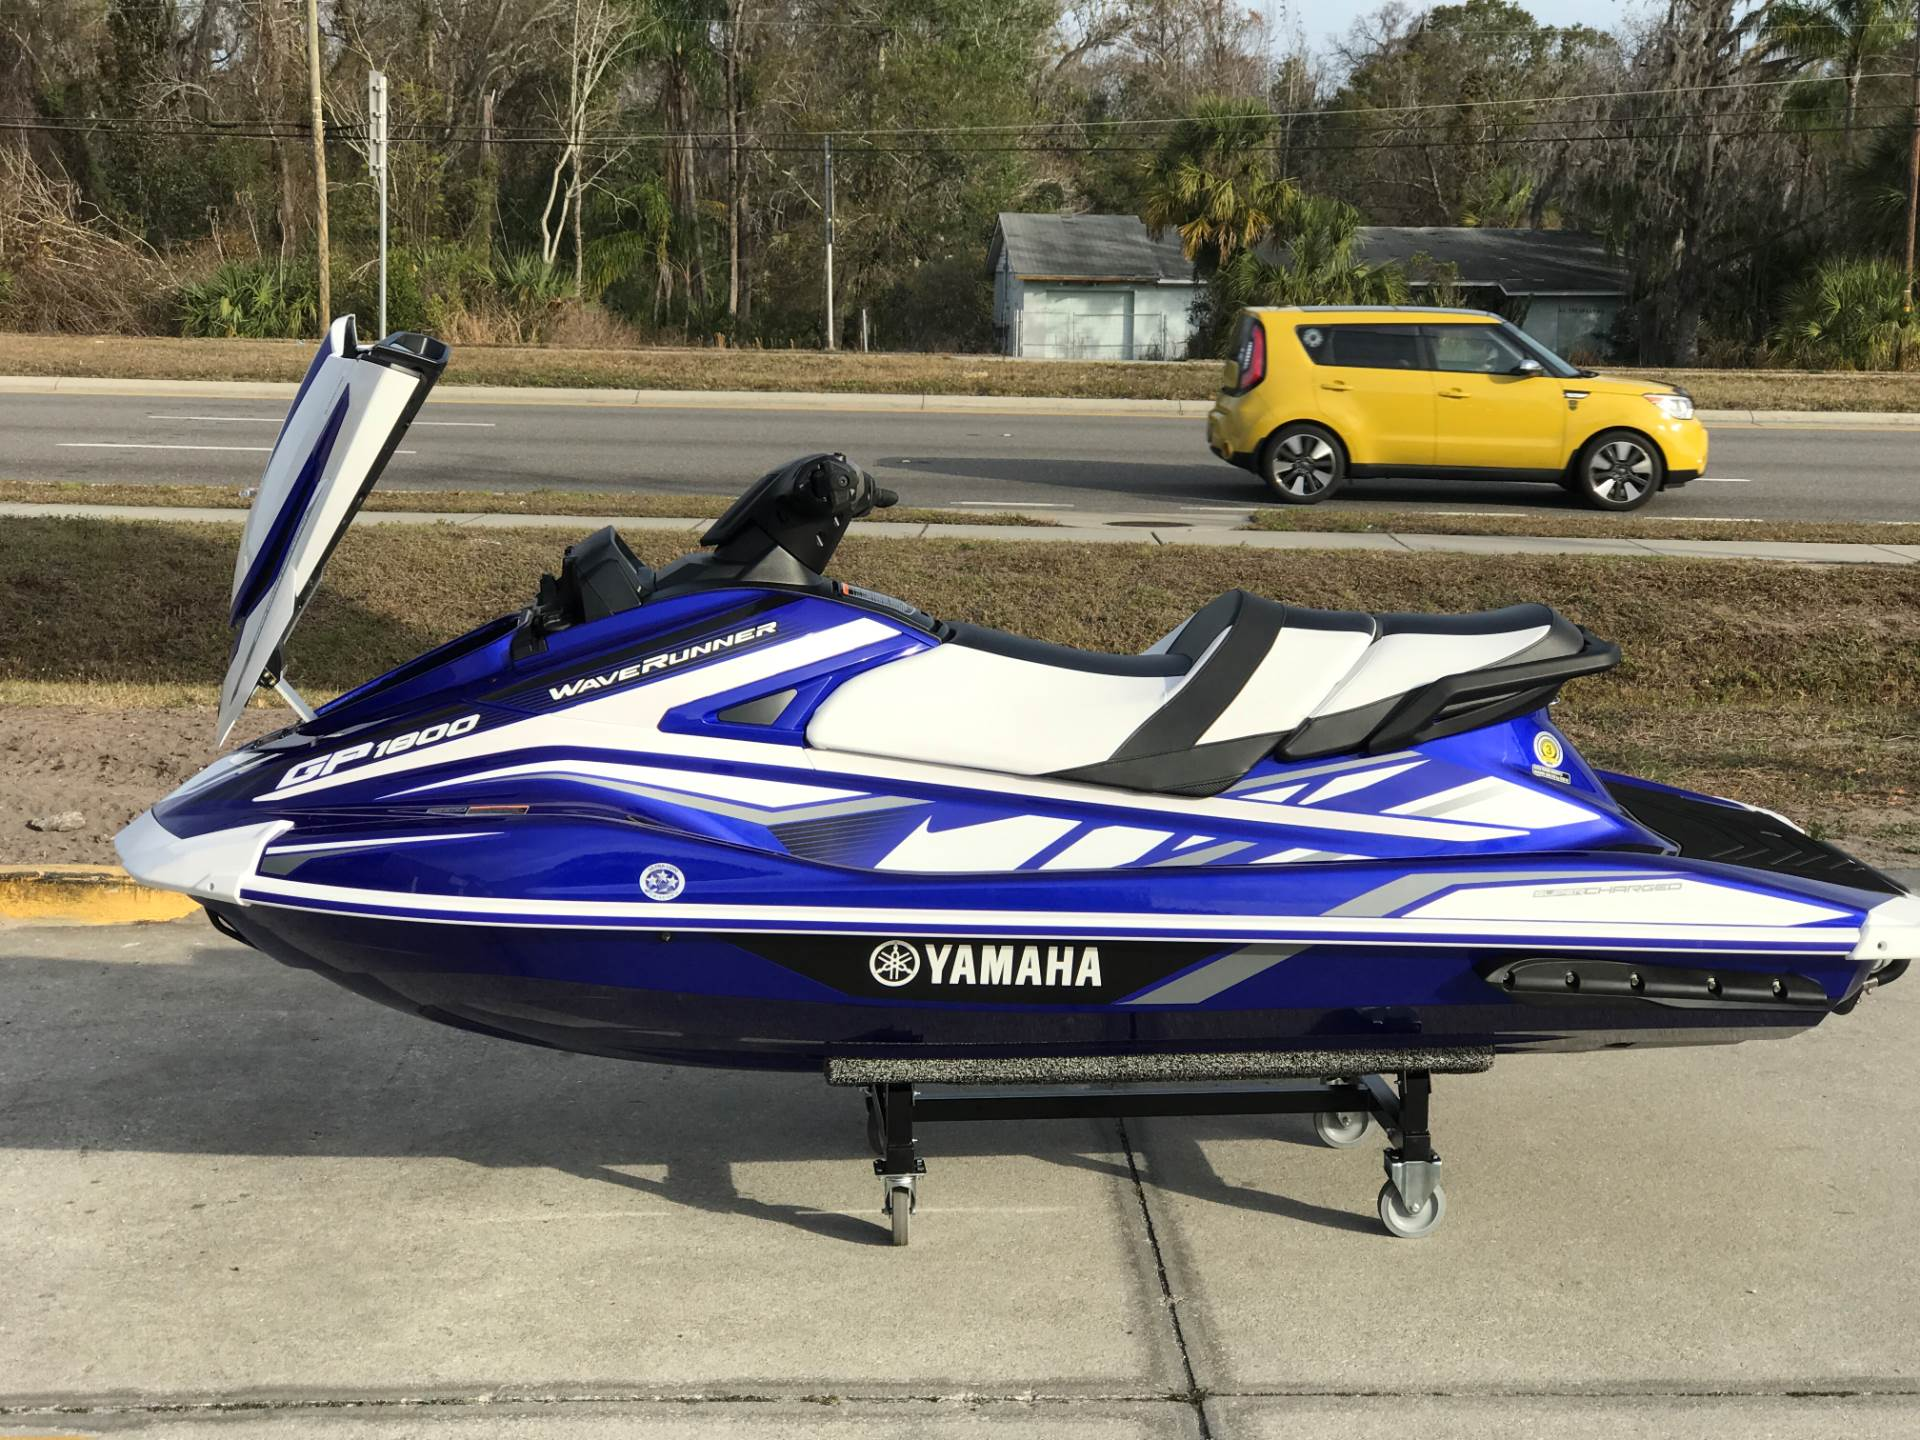 2018 Yamaha GP1800 in Orlando, Florida - Photo 28